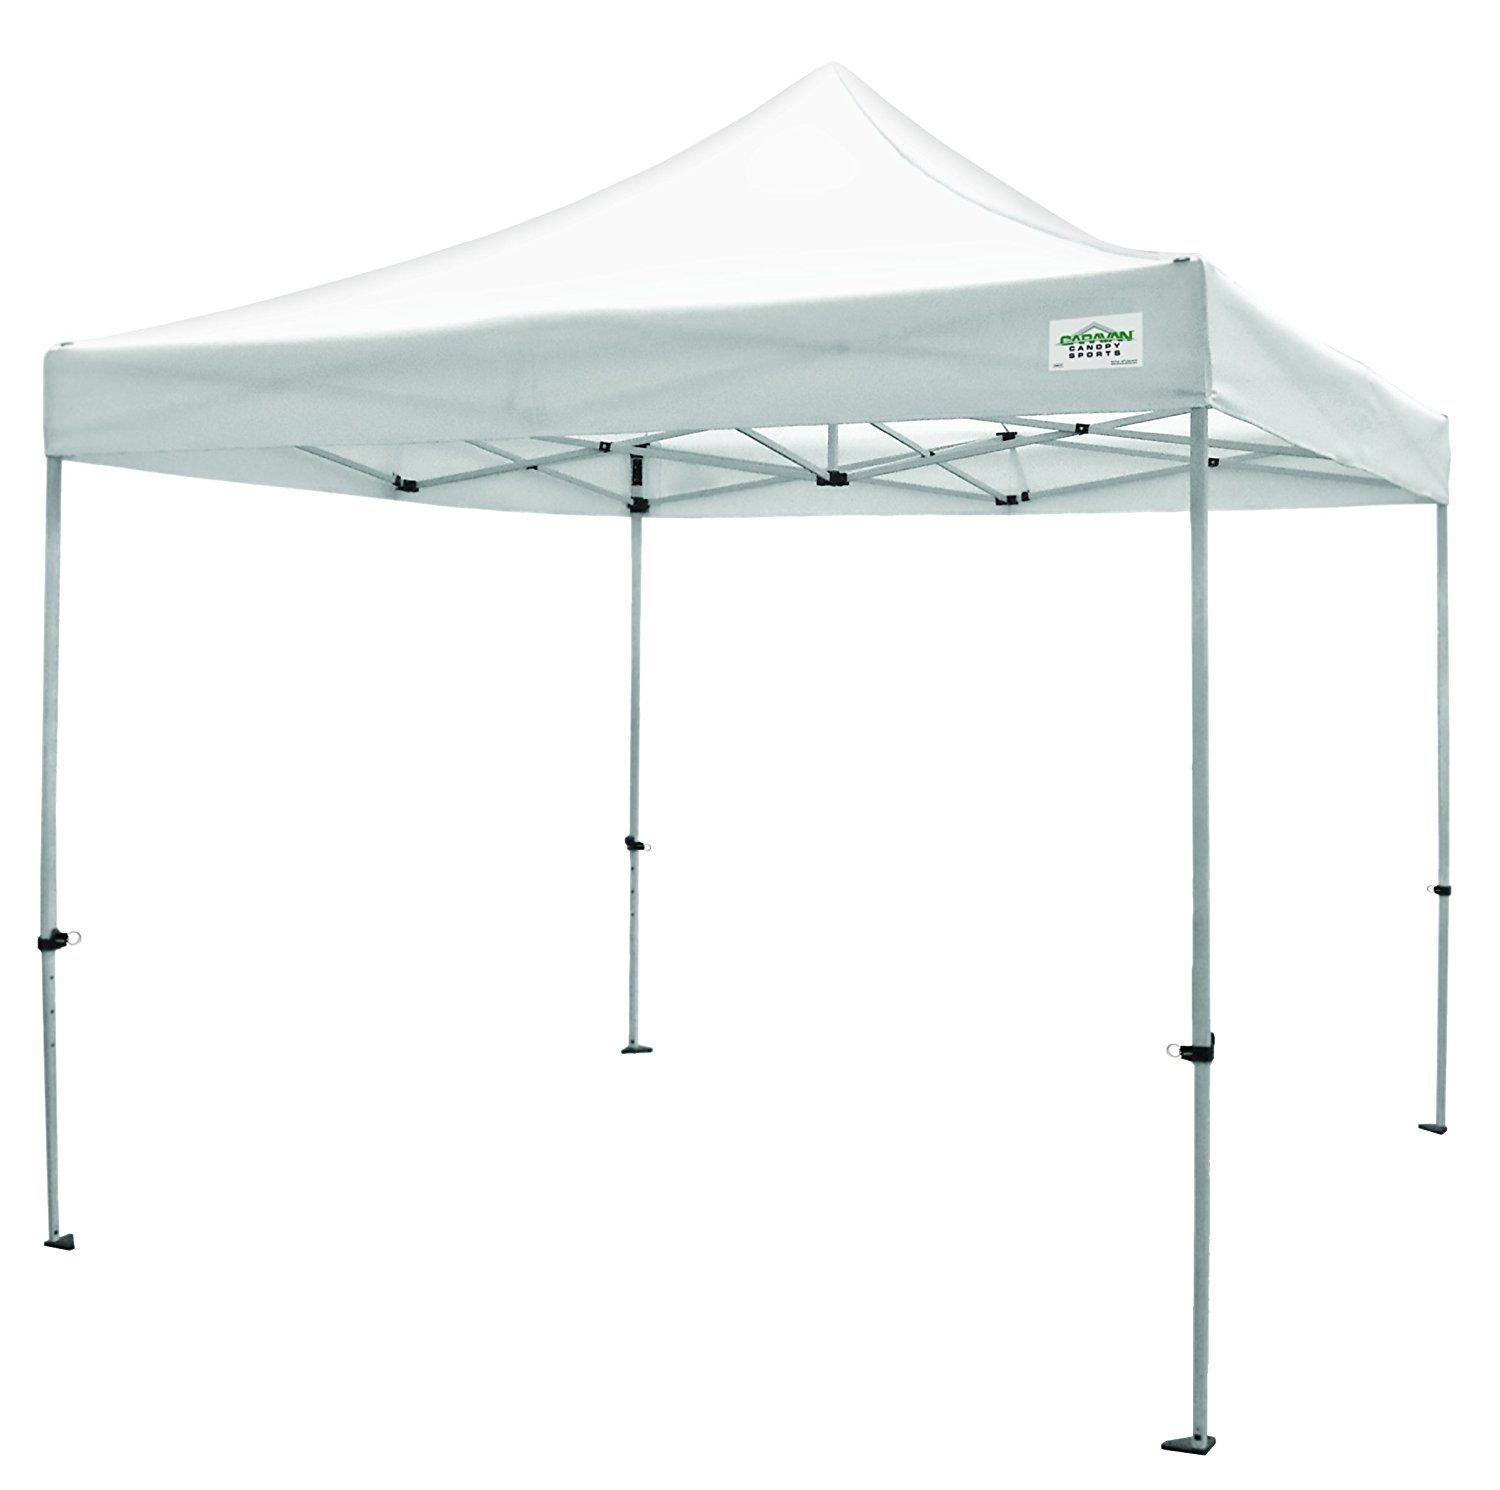 Caravan Canopy Titanshade 10 X 10 Foot Straight Leg Canopy White u003eu003eu003e Be sure to check out this awesome product.  sc 1 st  Pinterest & Caravan Canopy Titanshade 10 X 10 Foot Straight Leg Canopy White ...